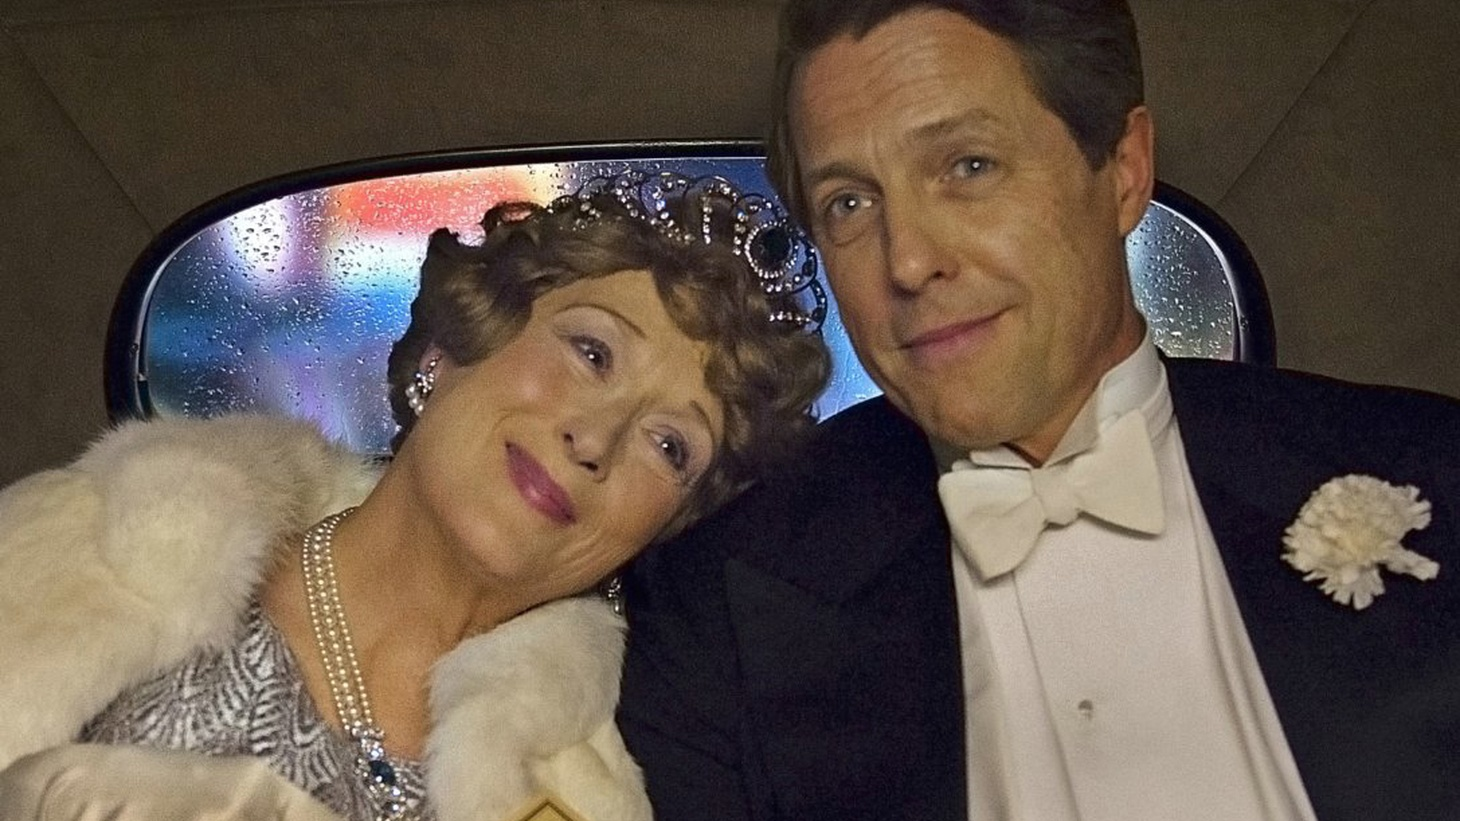 It's not exactly breaking news, but Meryl Streep is remarkable, and her latest showcase isFlorence Foster Jenkins.